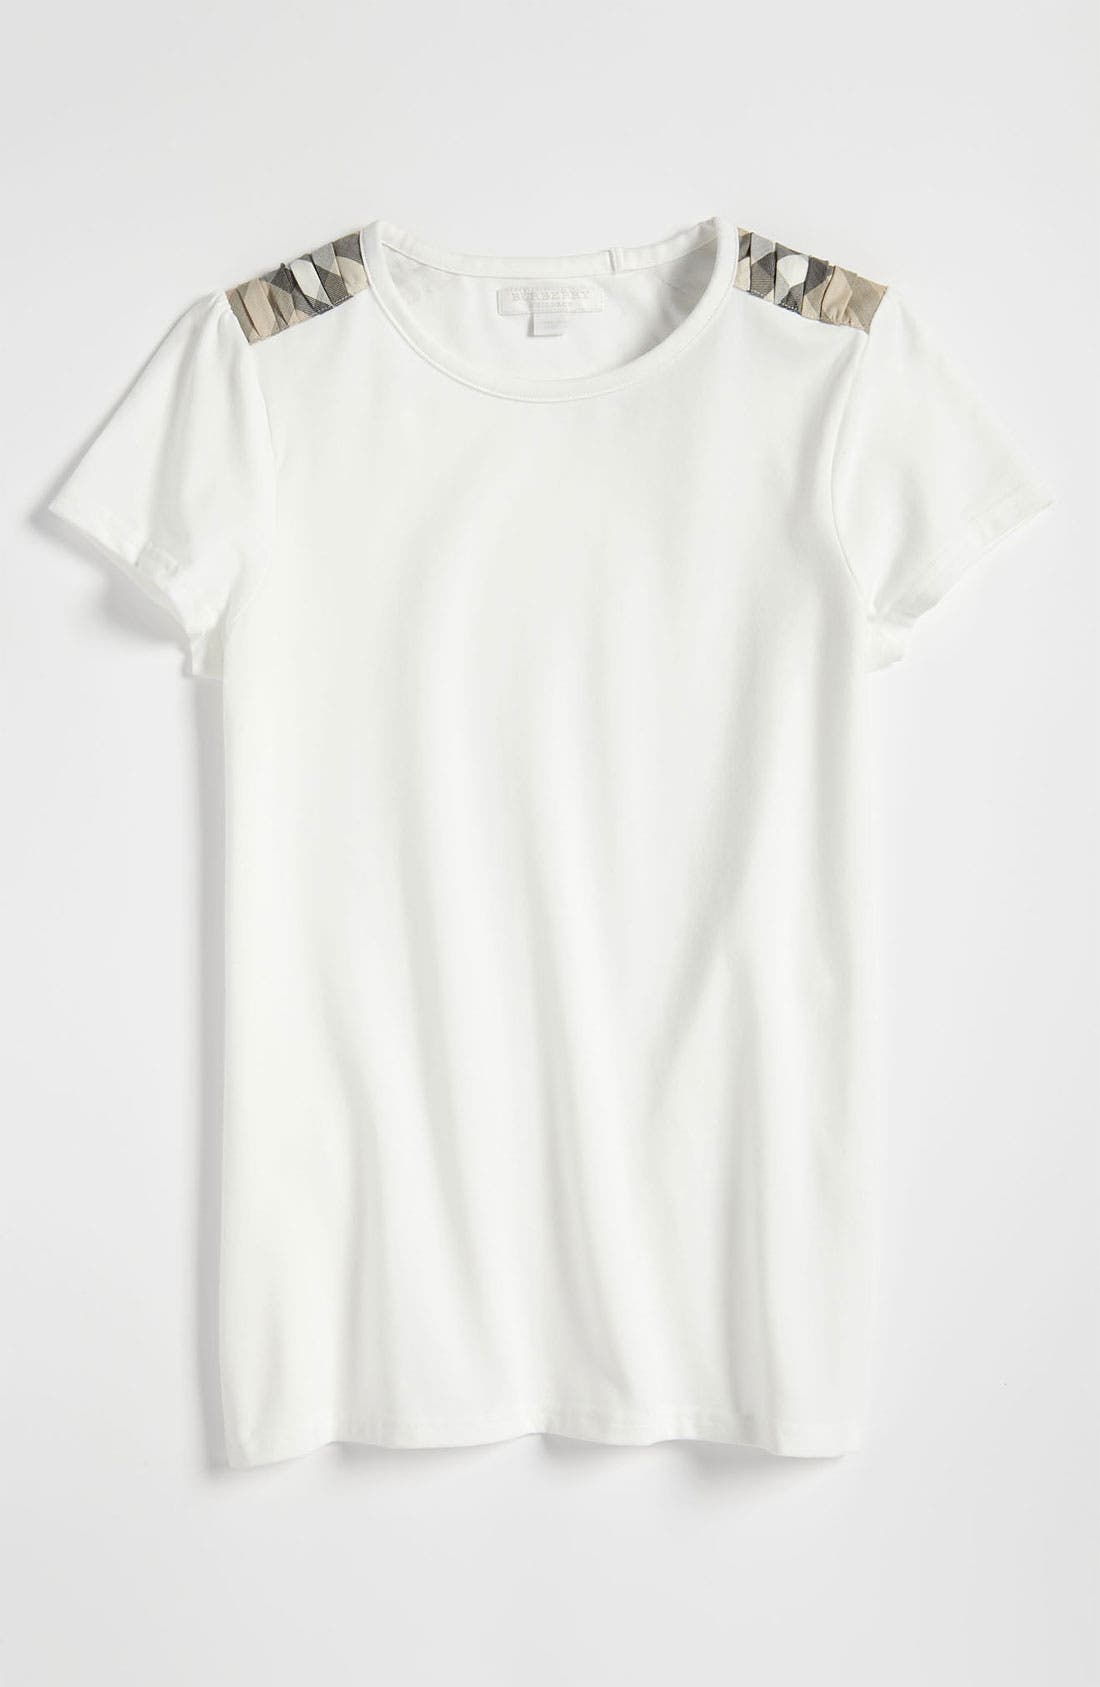 Main Image - Burberry Shoulder Patch Tee (Little Girls)